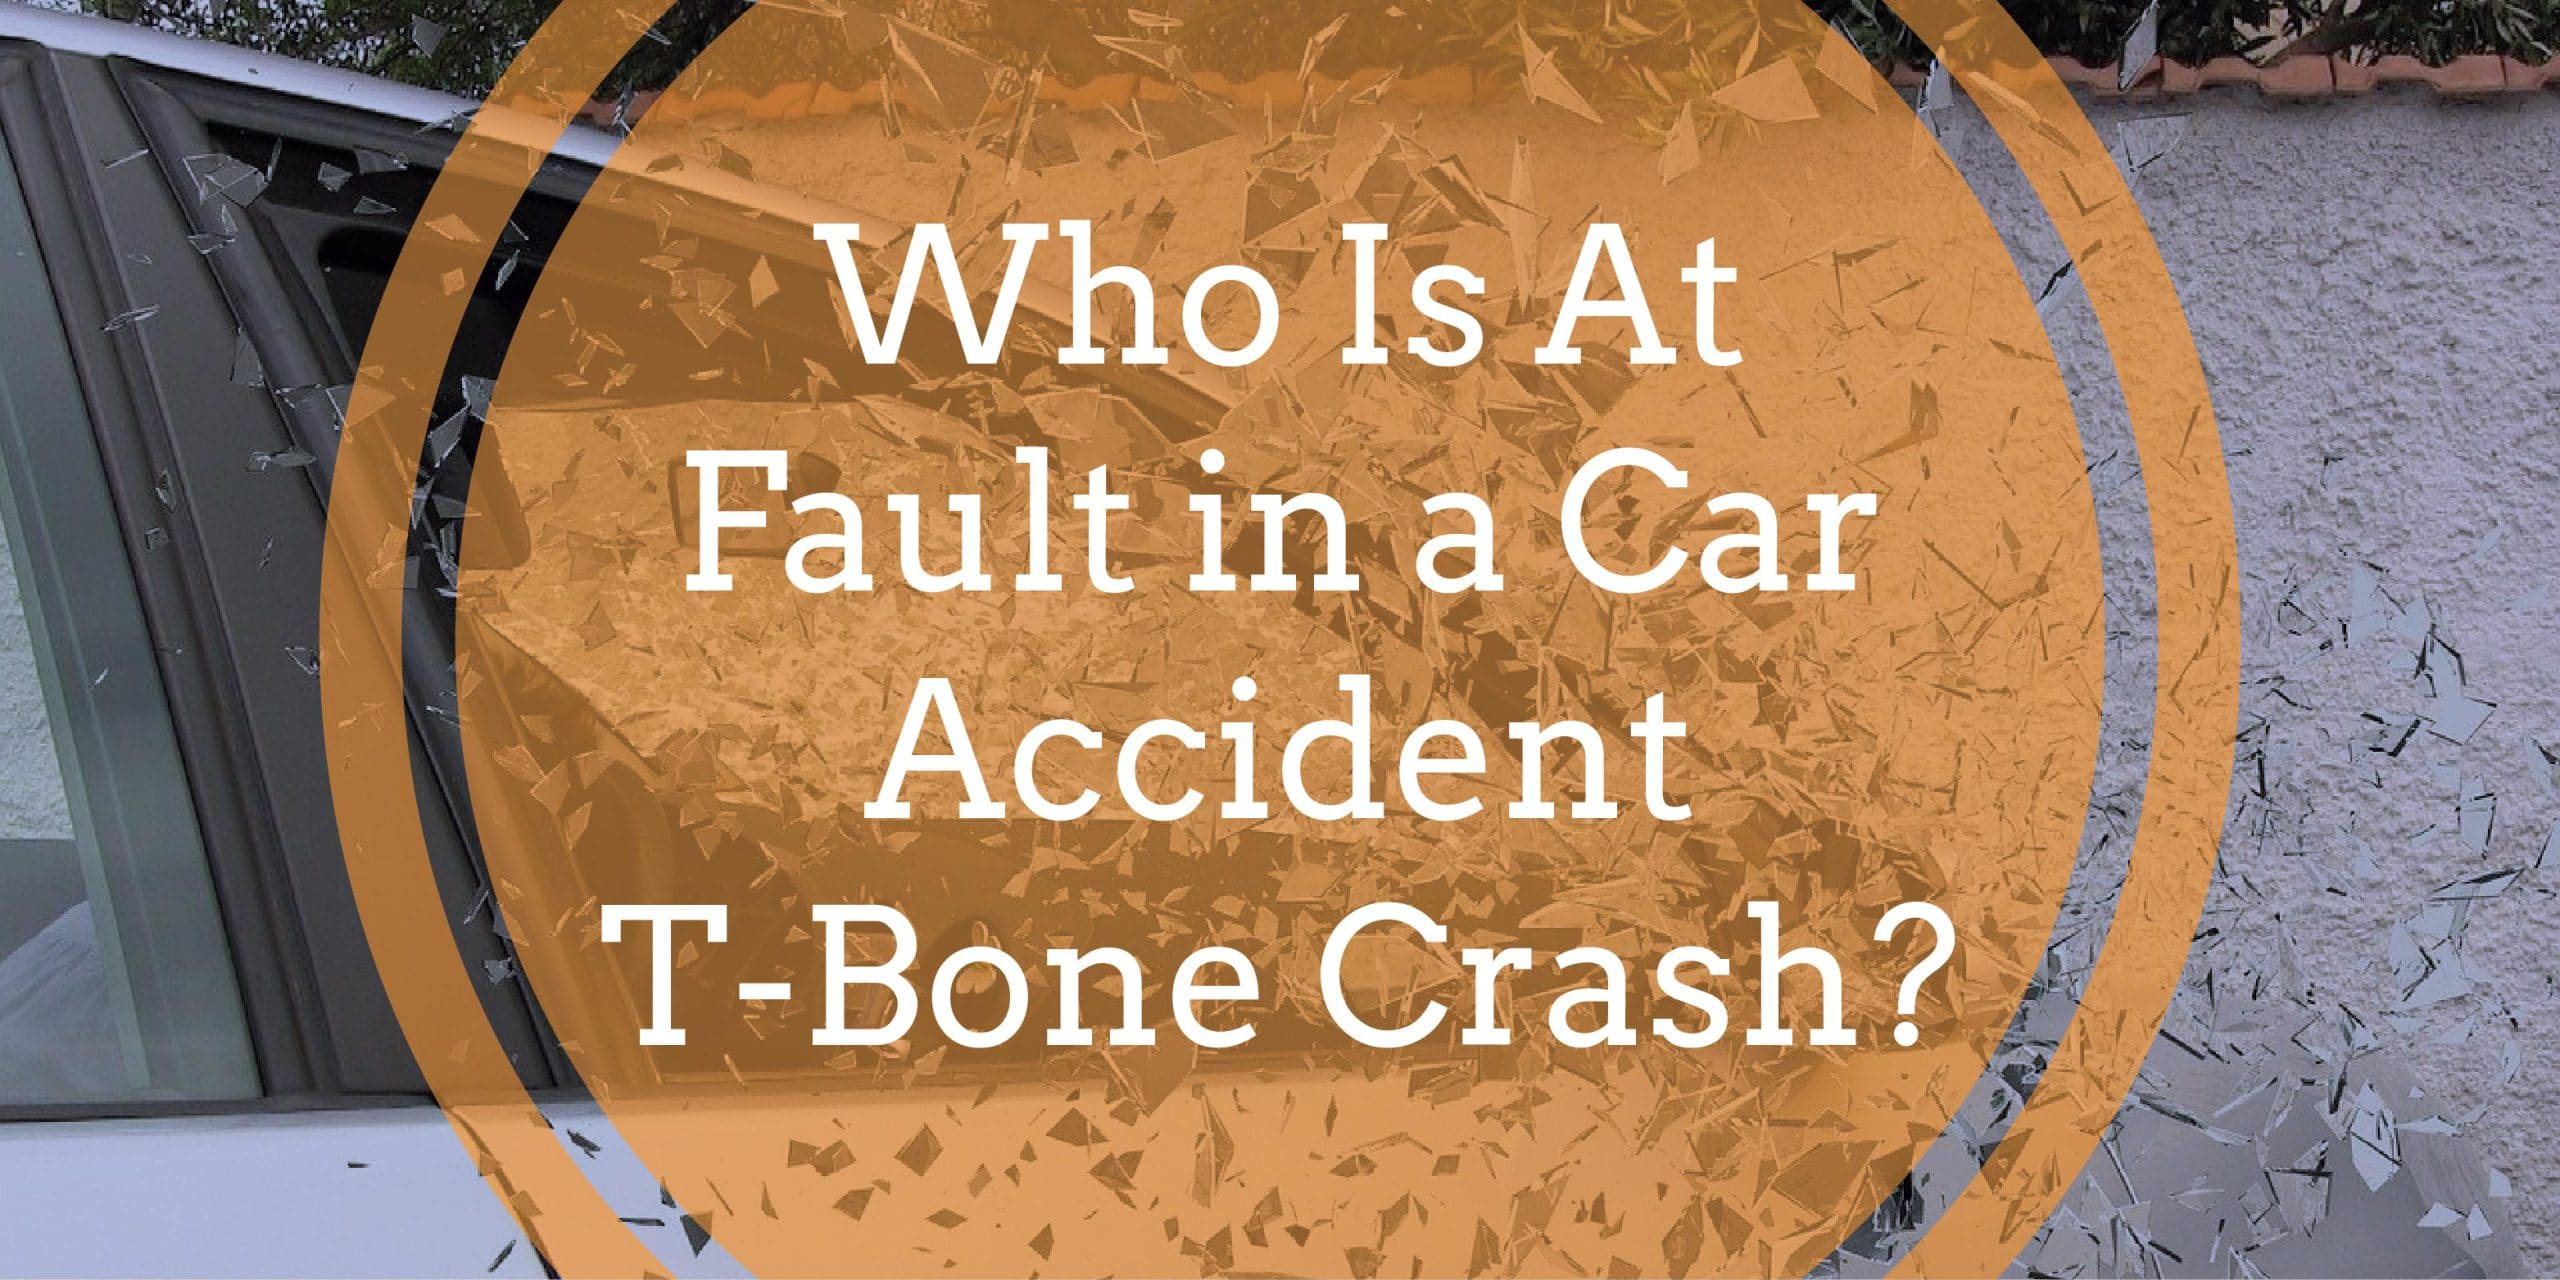 Who is at fault in a car accident t-bone crash?